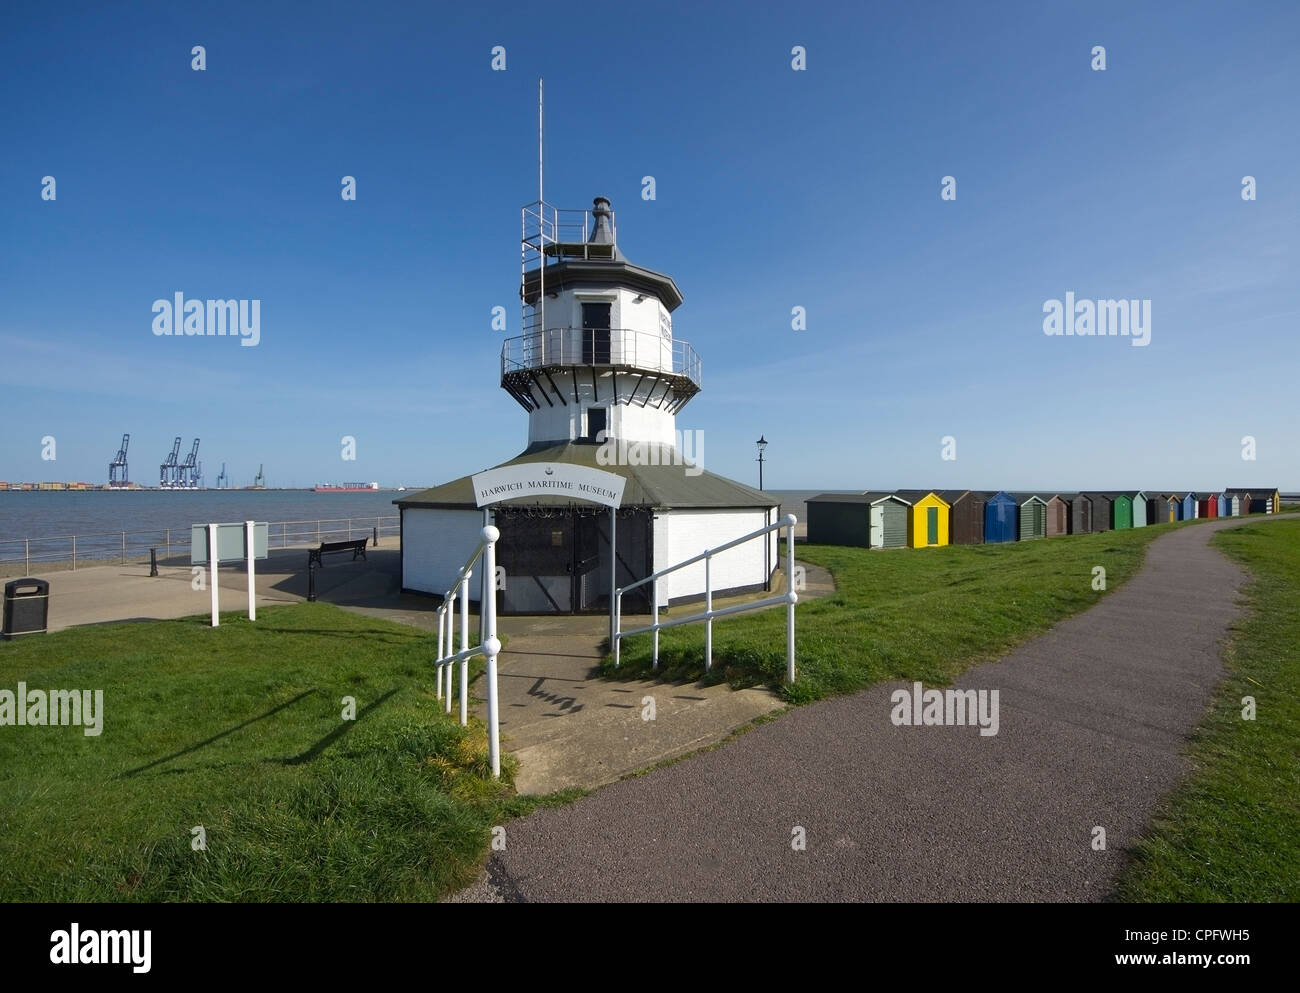 The old Low Lighthouse on the waterfront of Harwich houses a Maritime Museum - Stock Image